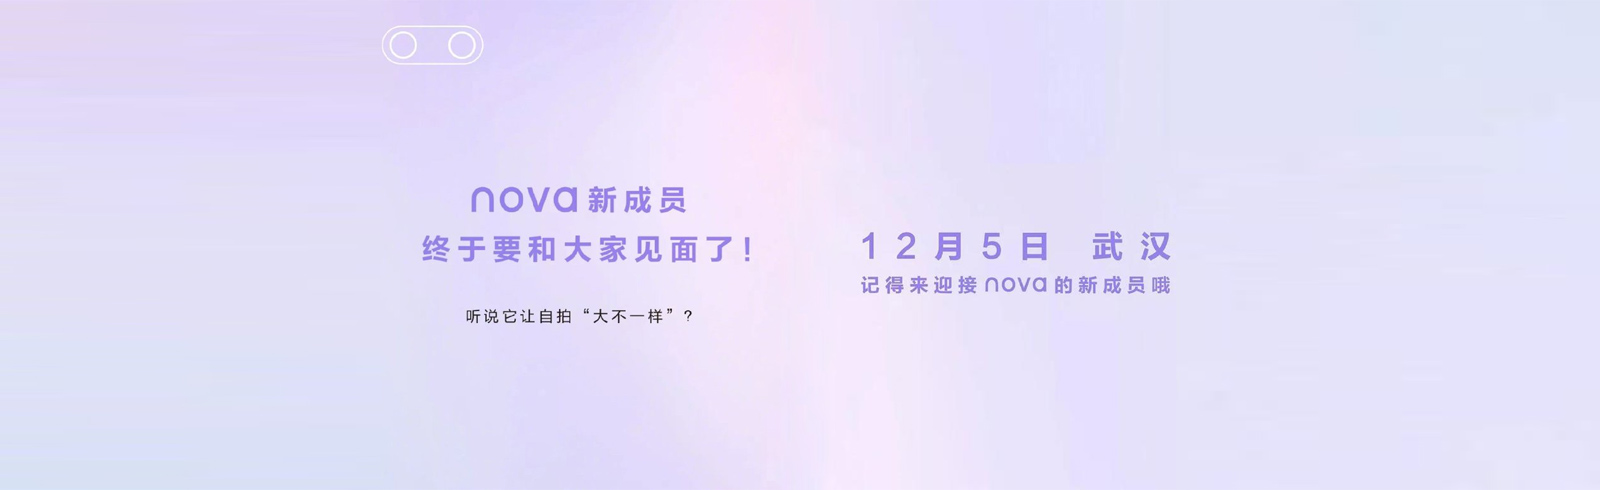 Huawei nova 6 will be unveiled on December 5